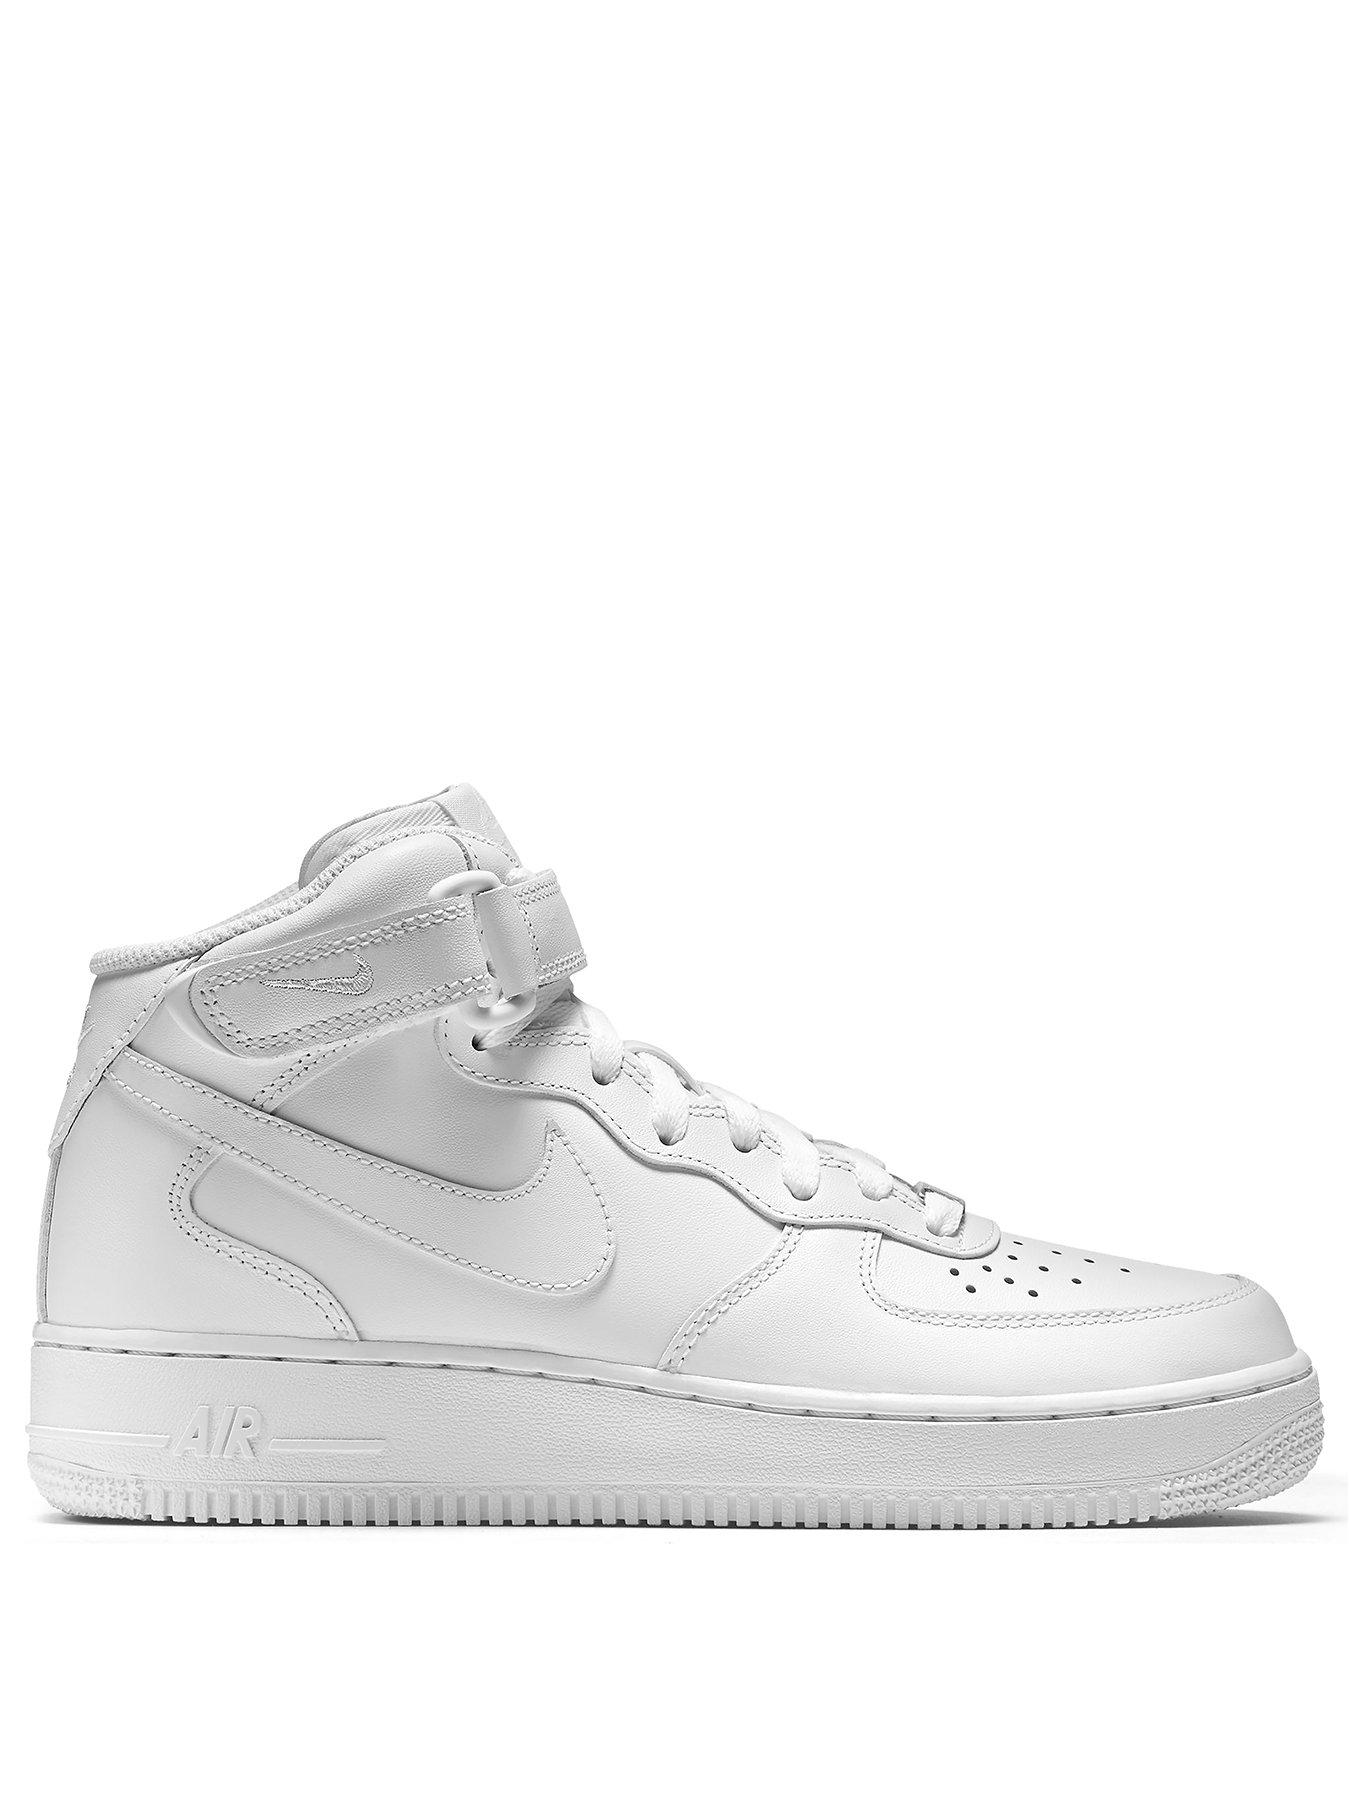 nike air force 1 mid 07 grey/white bathrooms